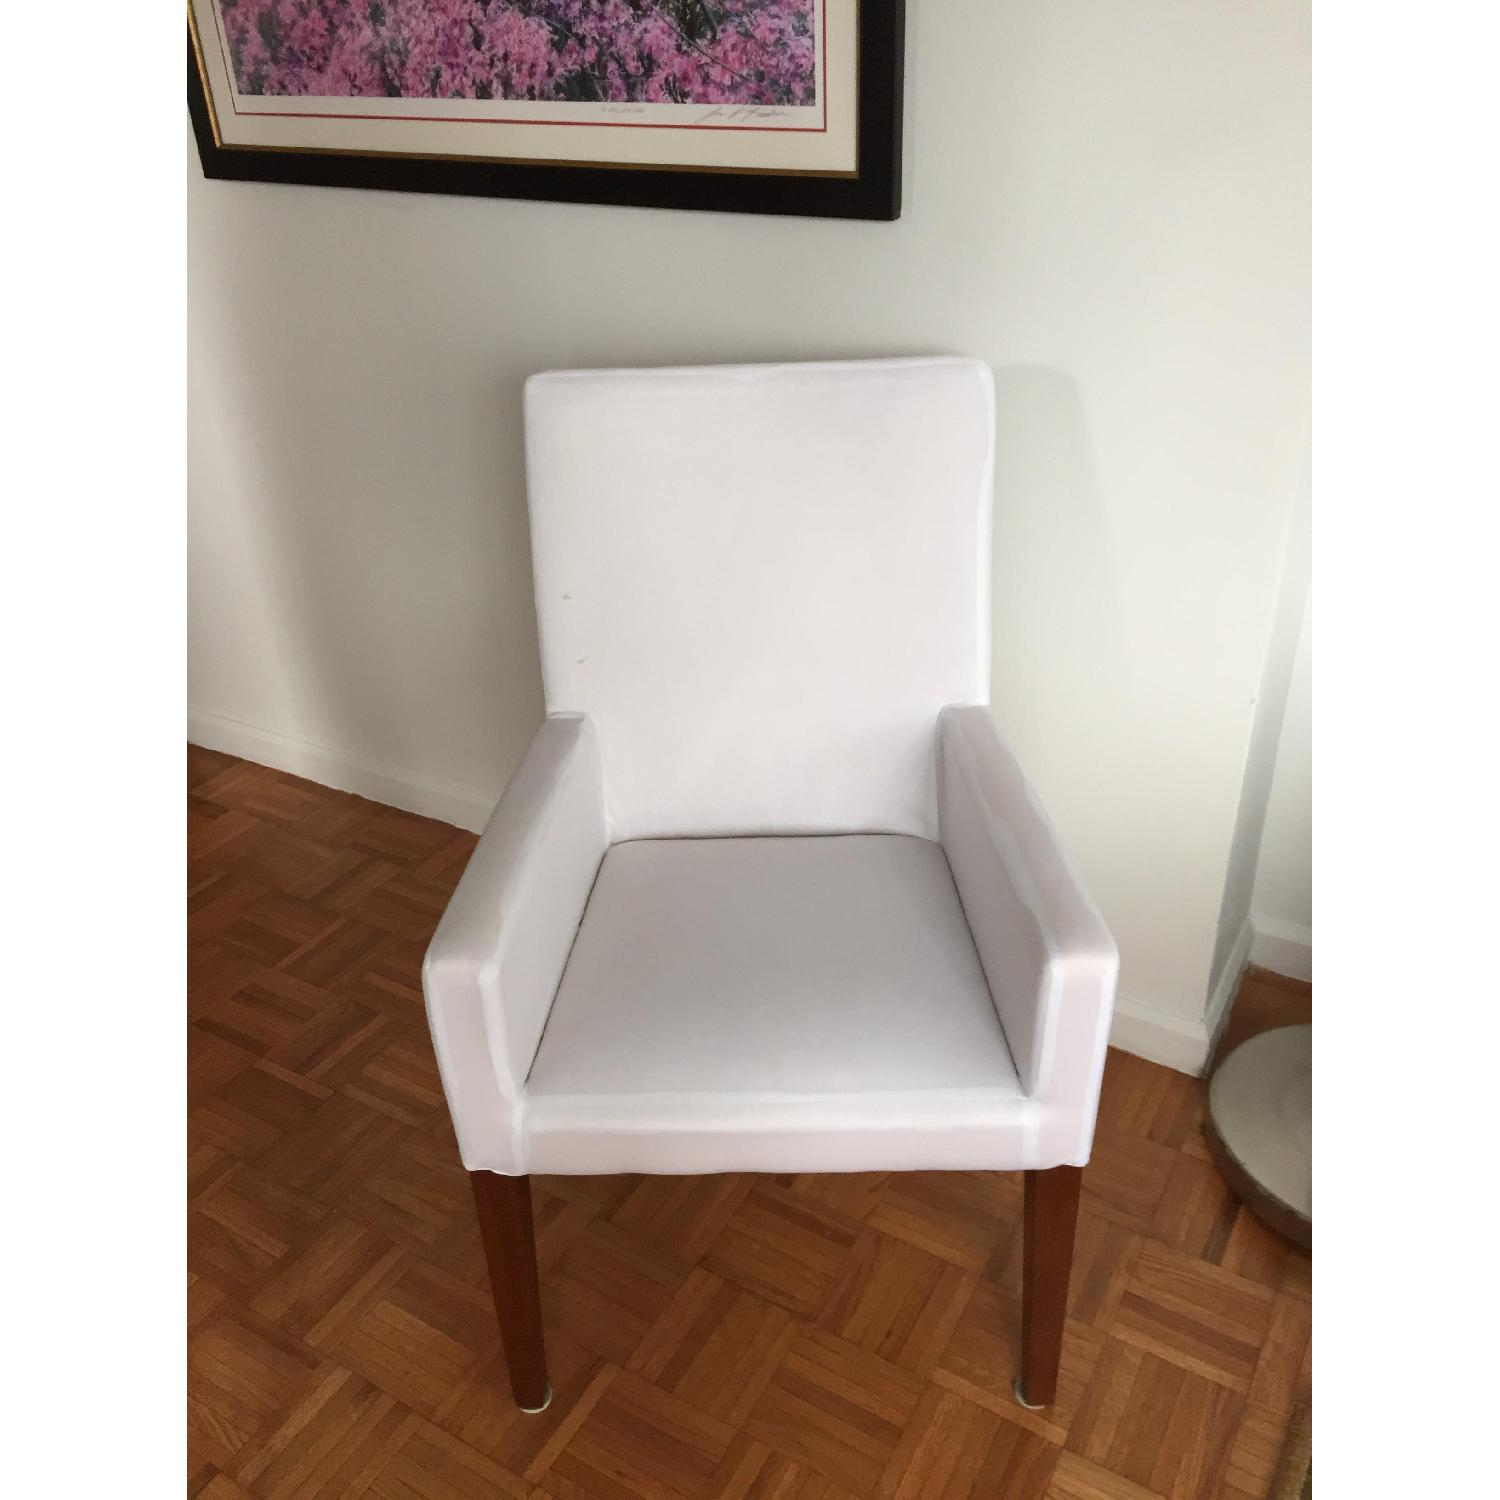 Pottery Barn Cooper Arm Chair w/ Natural Slipcover - image-1